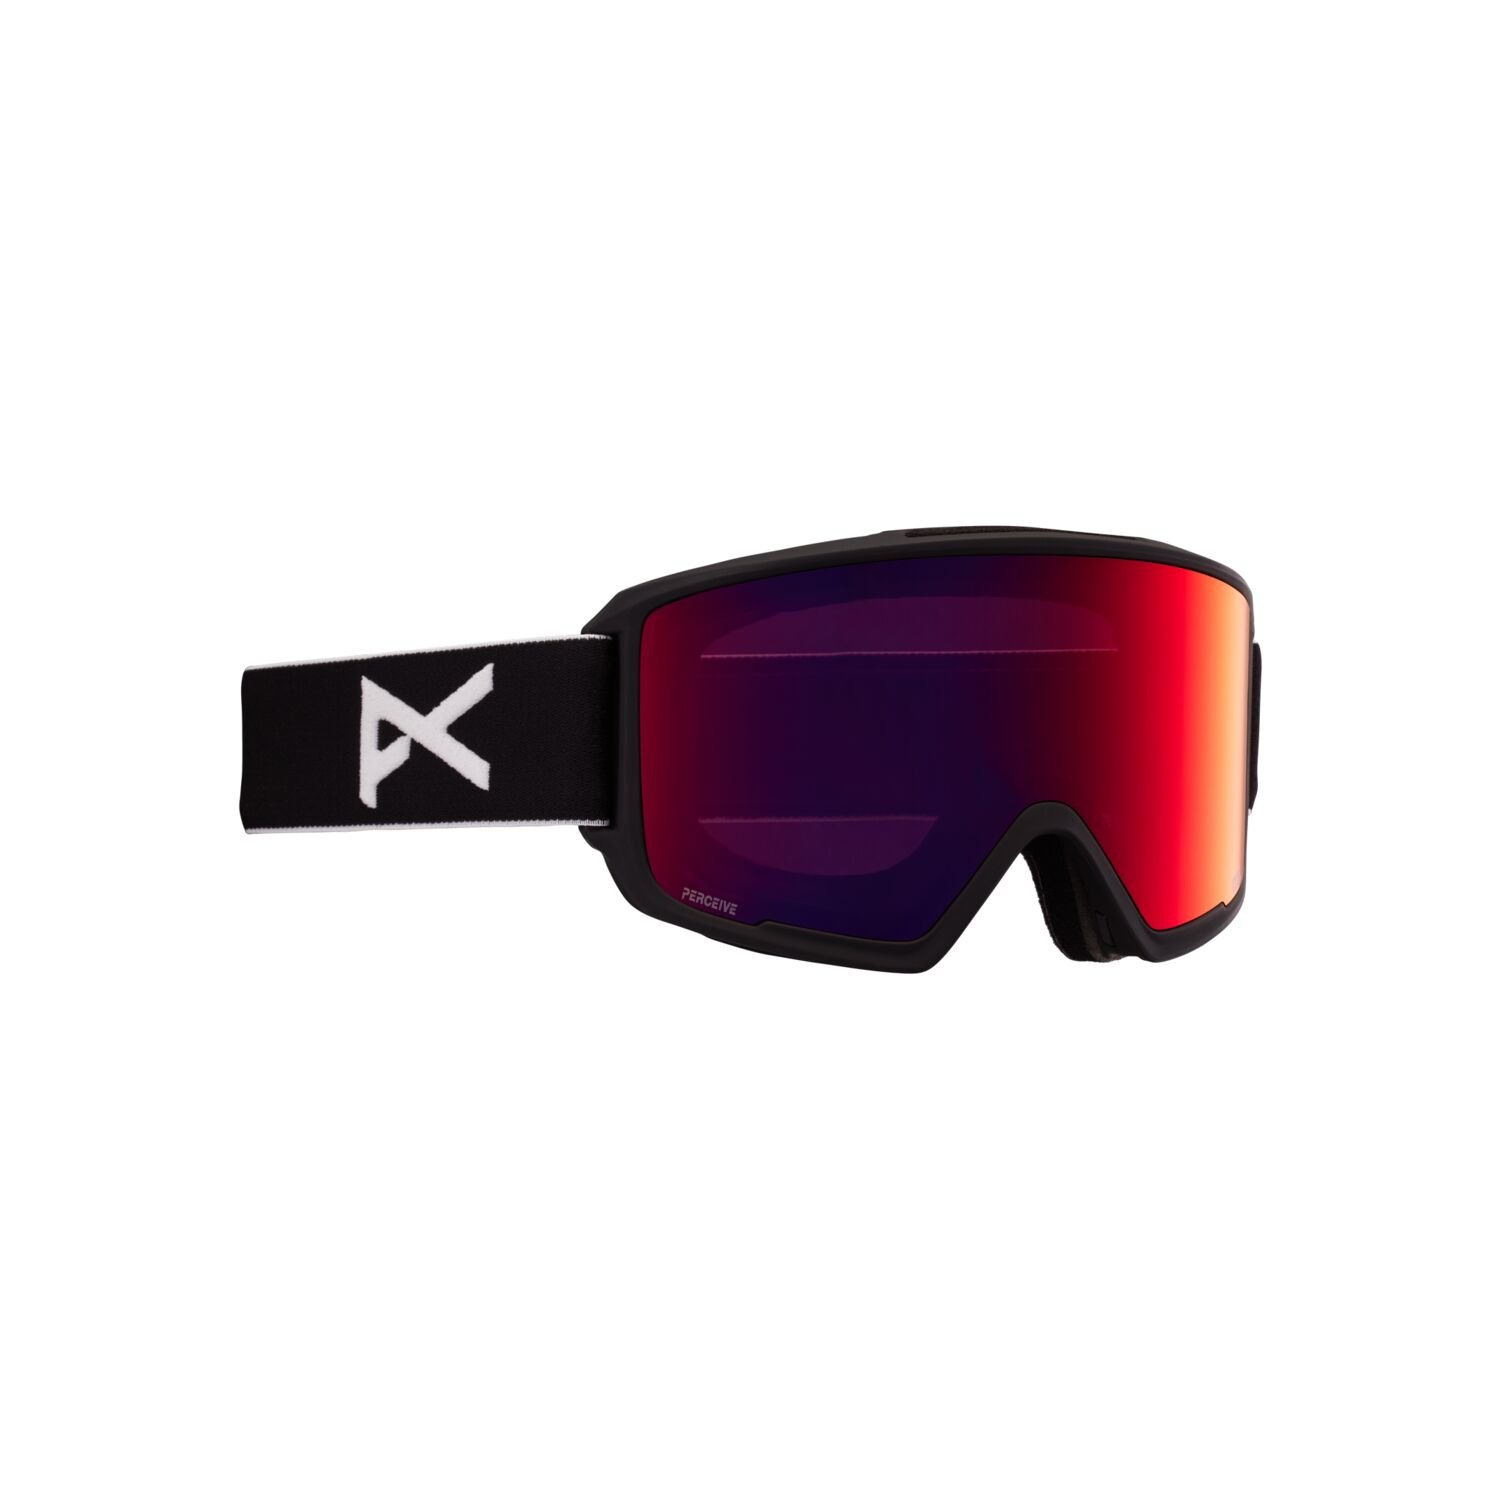 Anon M3 w/Spare Lens Snowboard Goggle (Multiple Color Options)